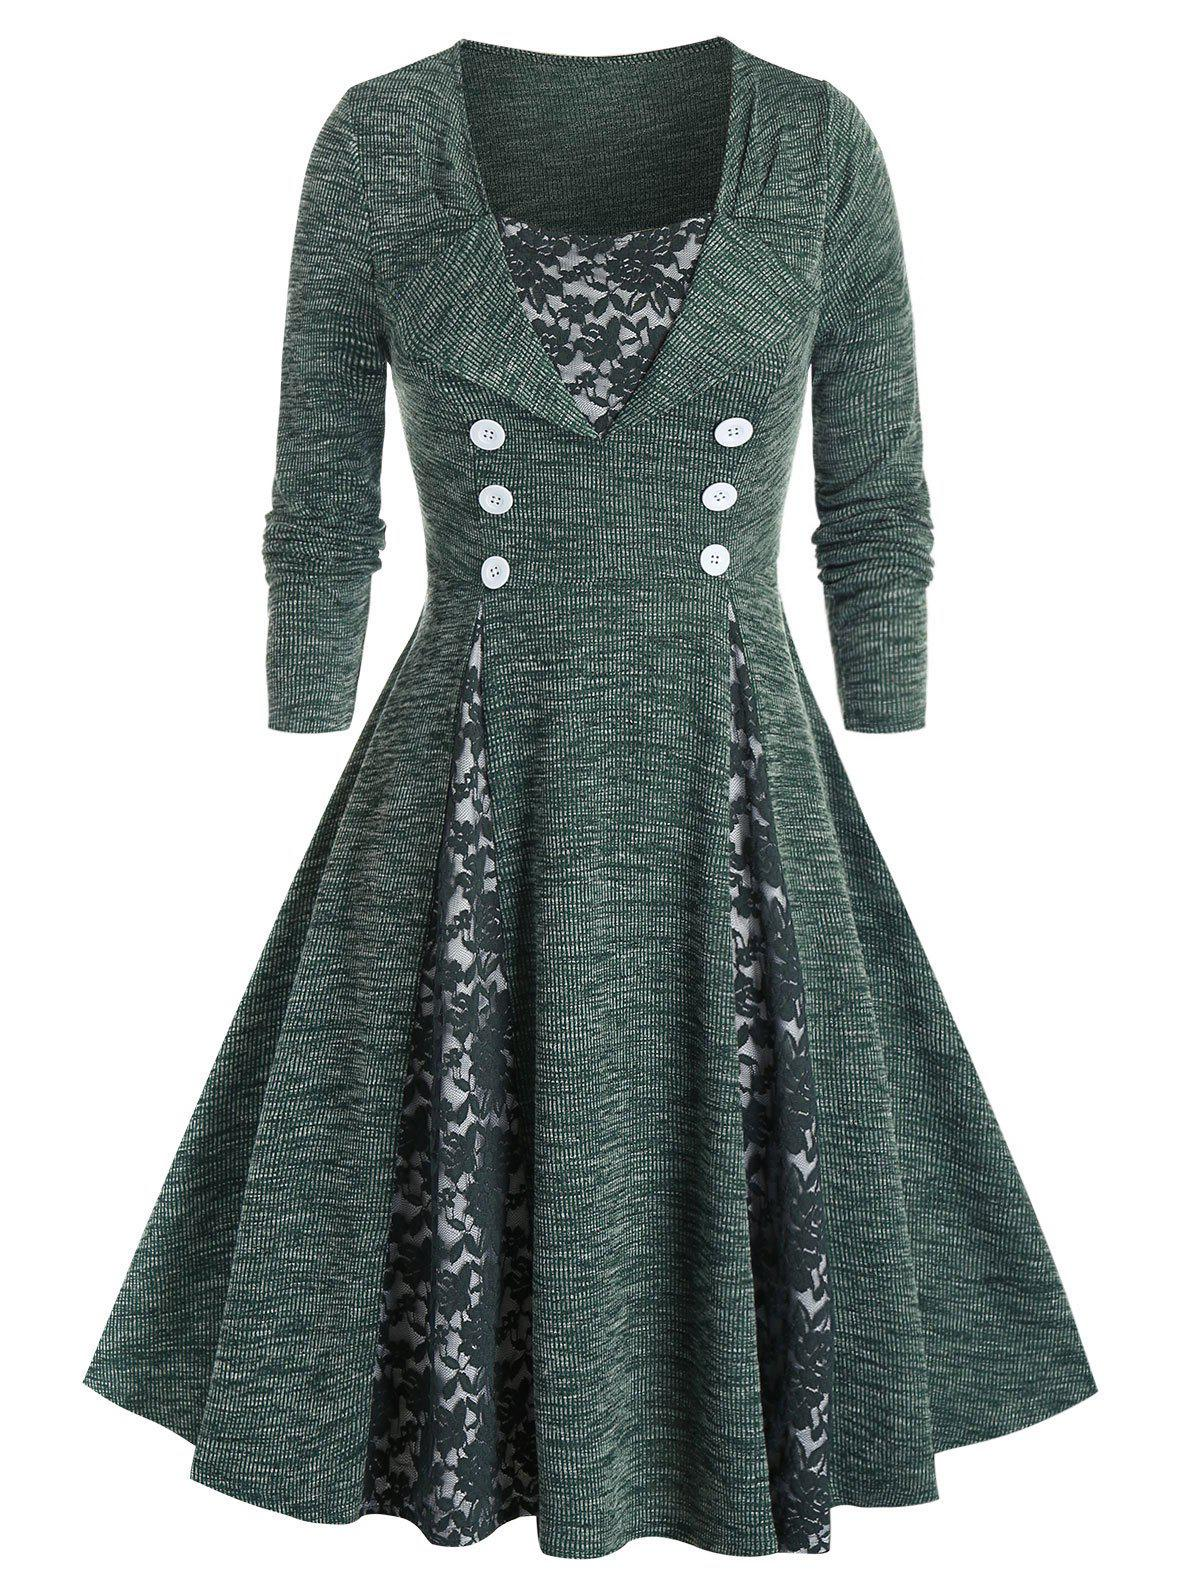 Plus Size Lace Insert Sailor Button Knitted Dress - DEEP GREEN 2X